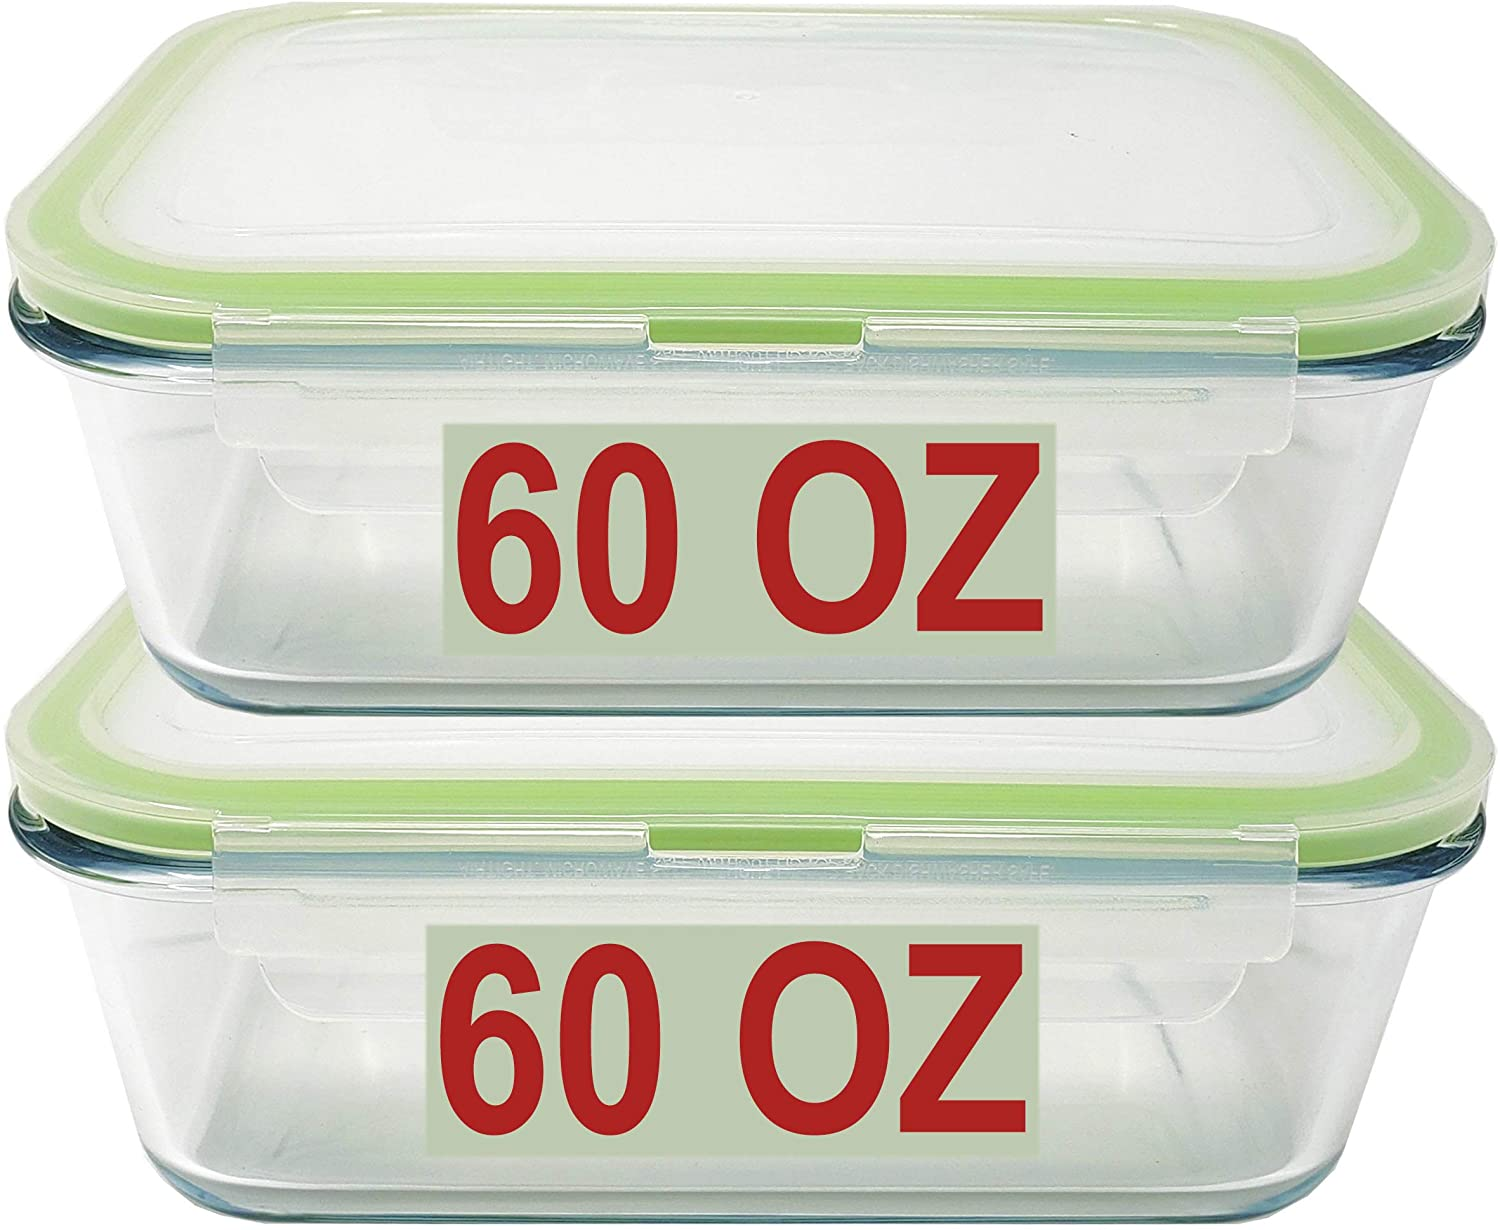 60 OZ LARGE Glass Food Storage Container Baking Dish Set with locking Airtight lids set of 2 Meal Lunch Prep Containers Storing & Serving Food Leakproof Microwave, Oven, Freezer and Dishwasher Safe